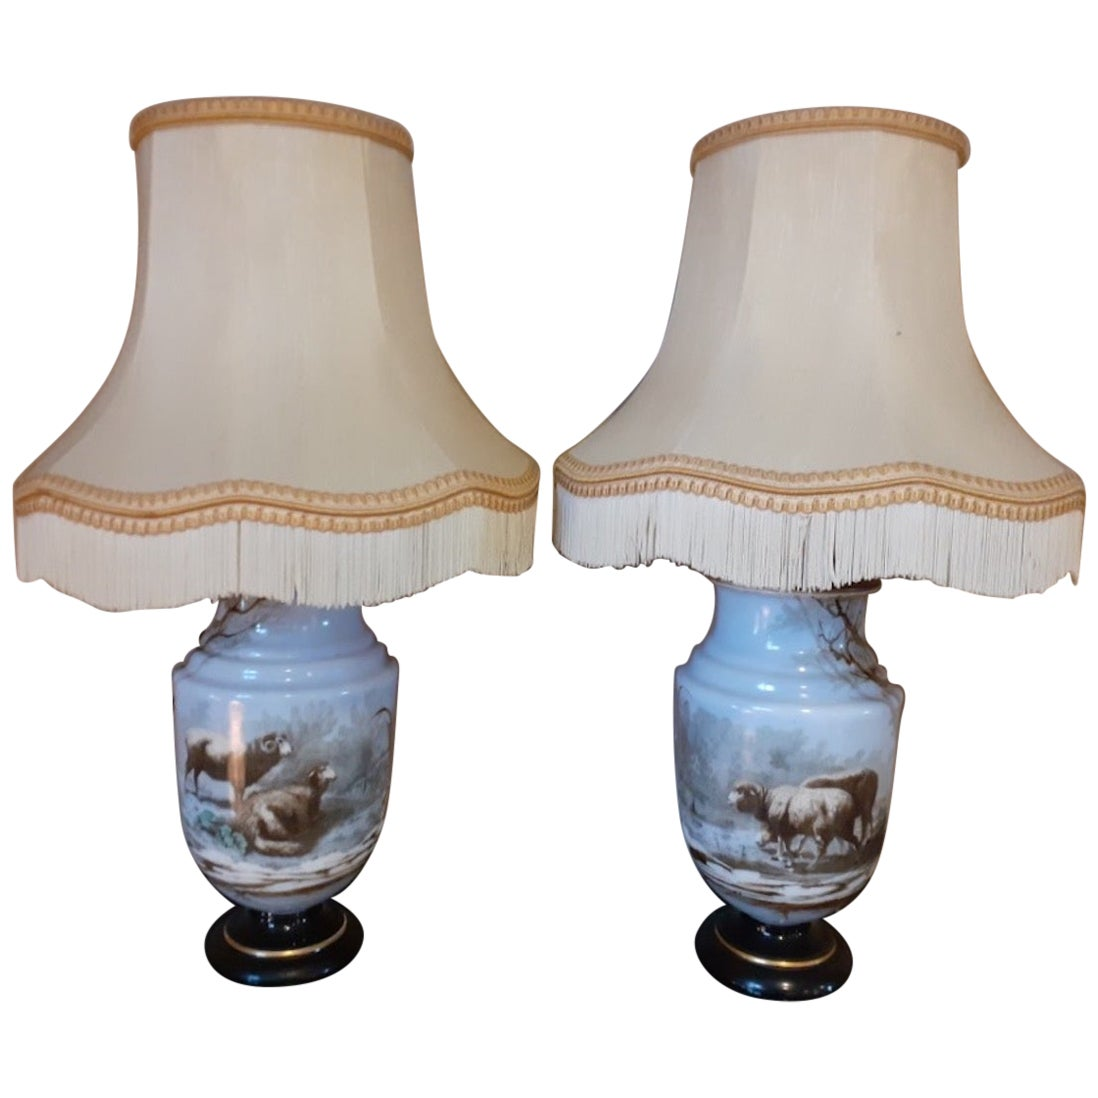 Early 20th Century French Opaline Glass Pair of Table Lamp, 1900s